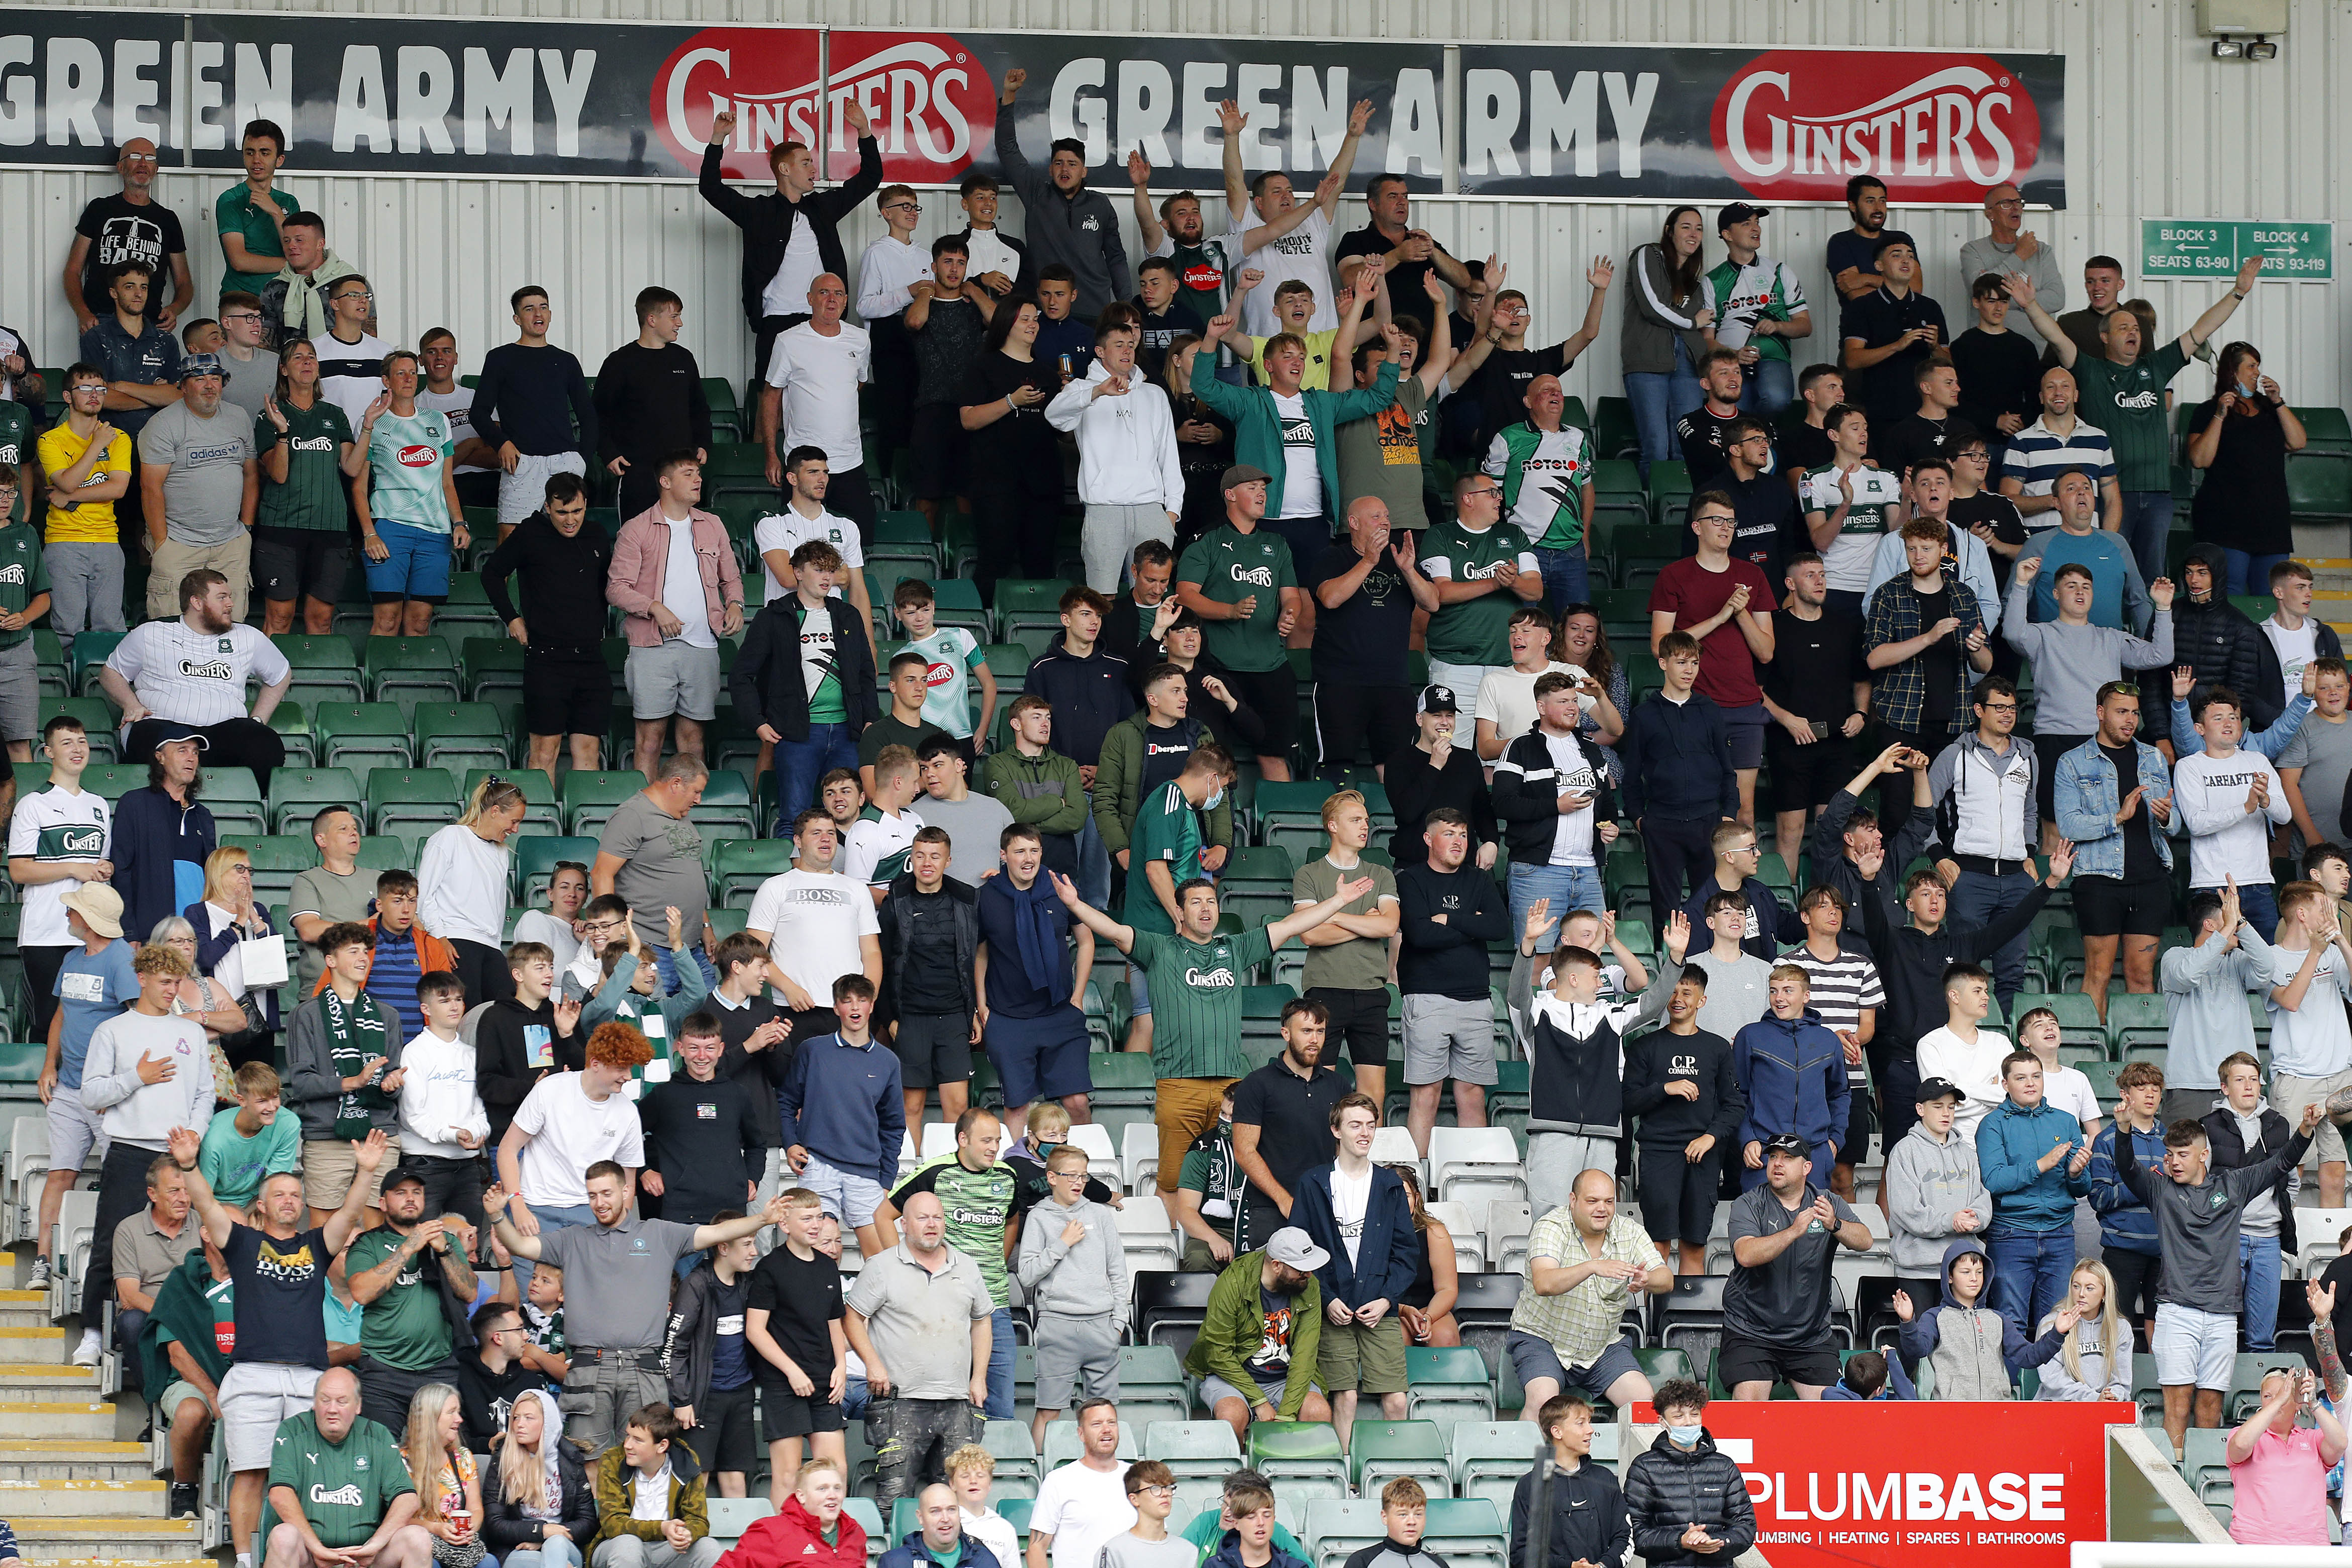 The Green Army